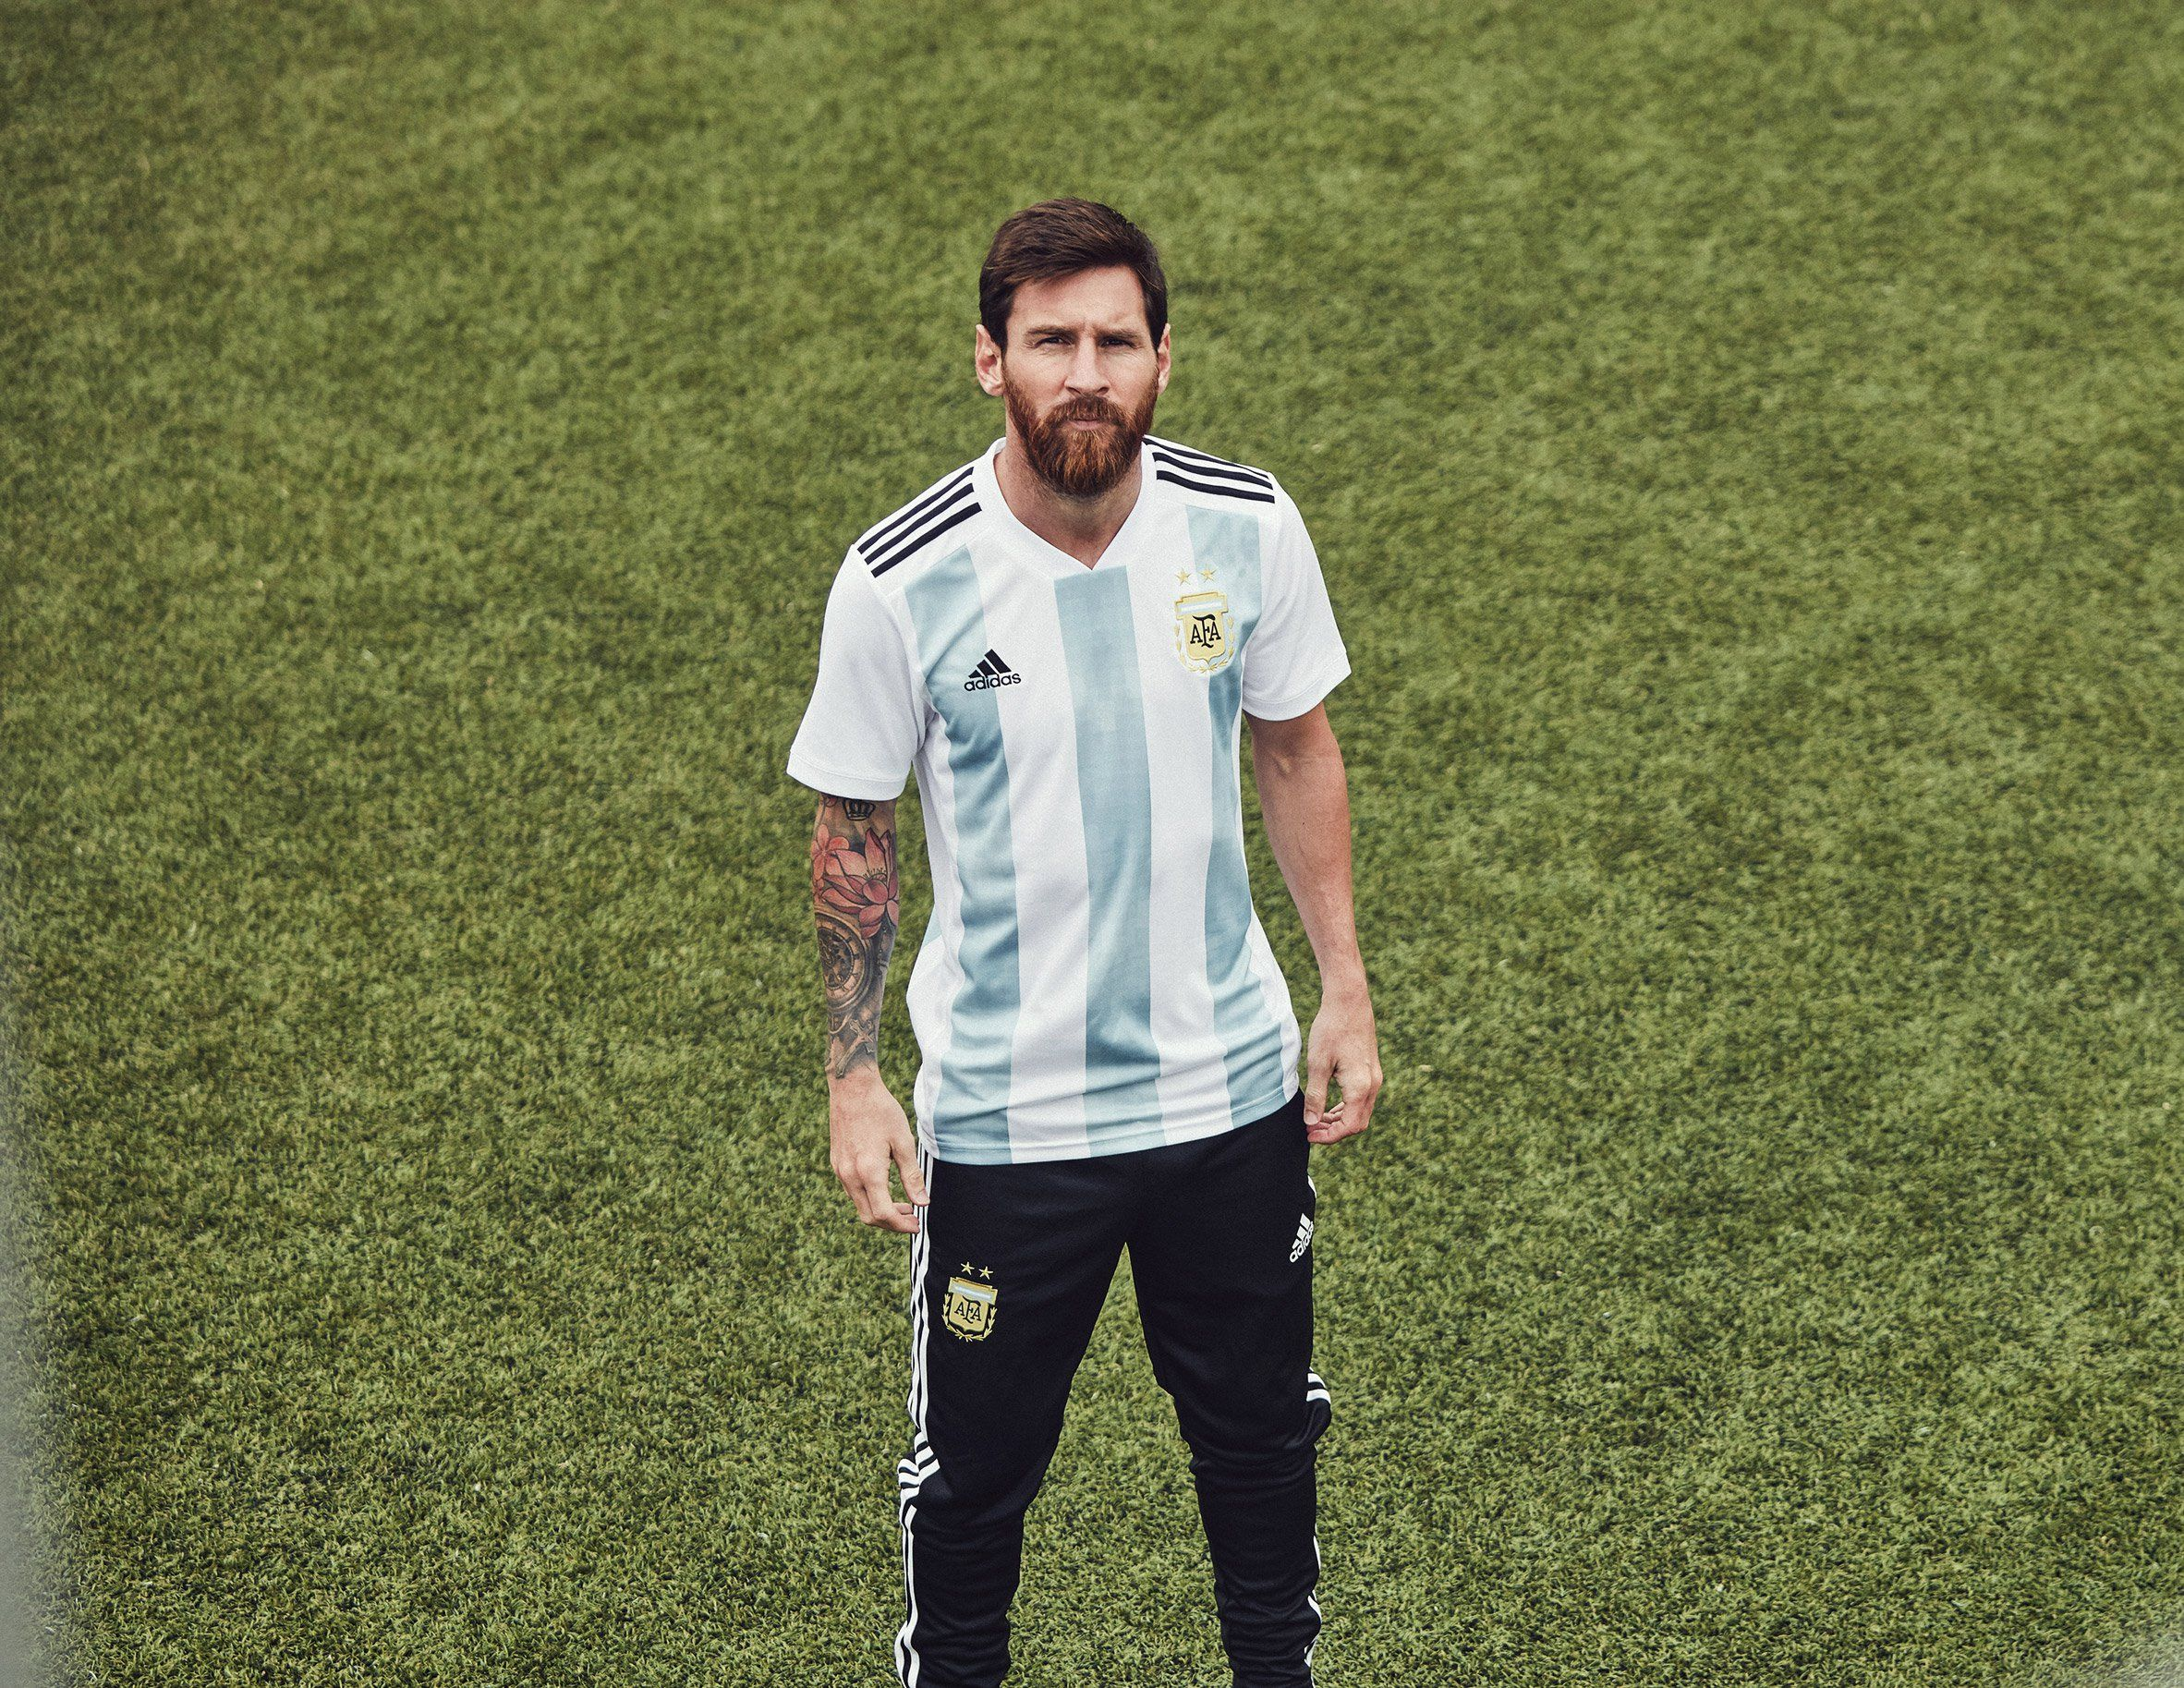 4cfa9d25d12 Adidas unveils World Cup kits that pay homage to classic football shirts